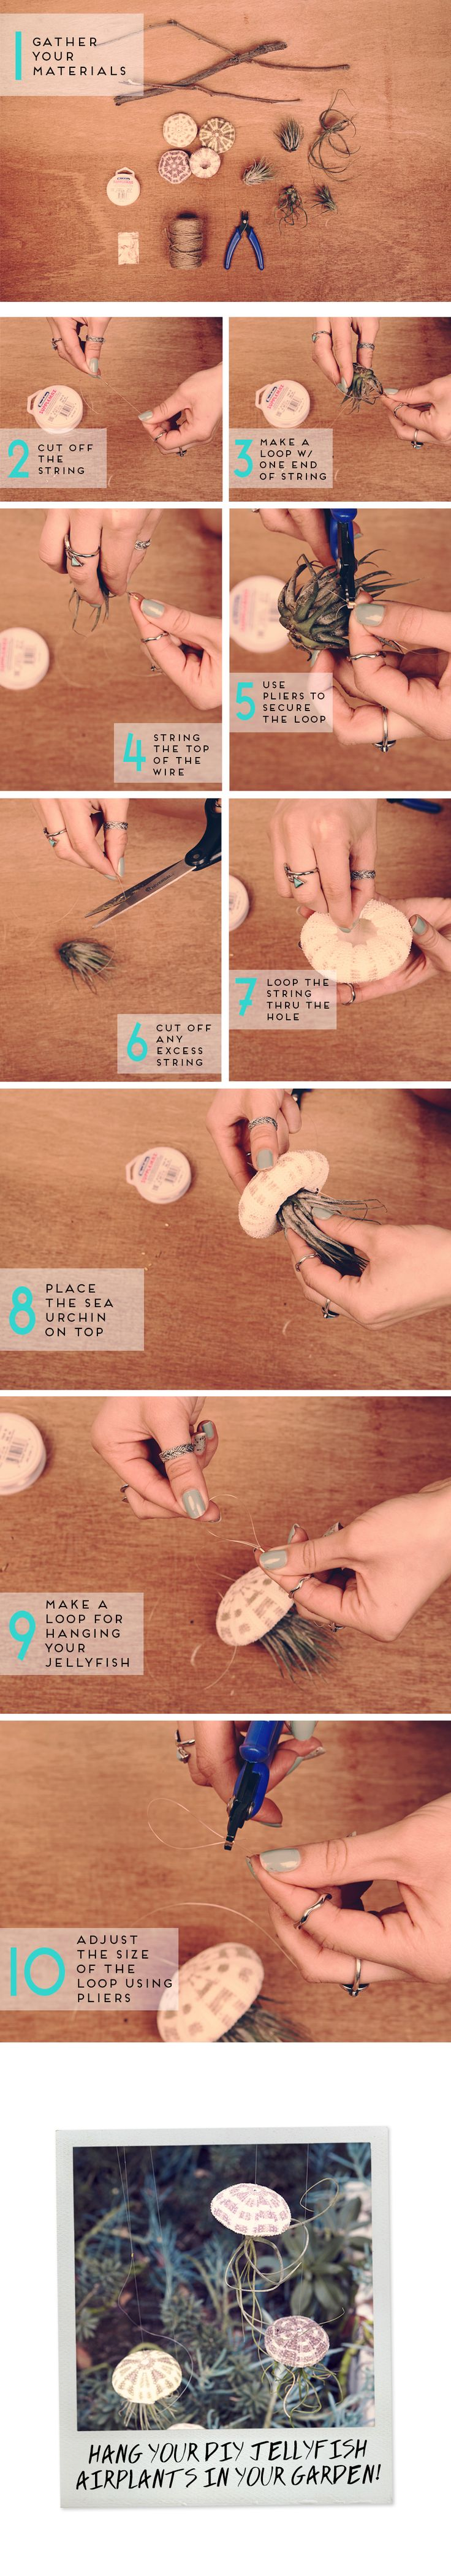 DIY: HOW TO MAKE JELLYFISH AIR PLANTS- Supplies: transparent string sea urchins air plants crimp beads flat nose pliers scissors- Don't forget to submerge the plant in water for 2-3 hours every two weeks!